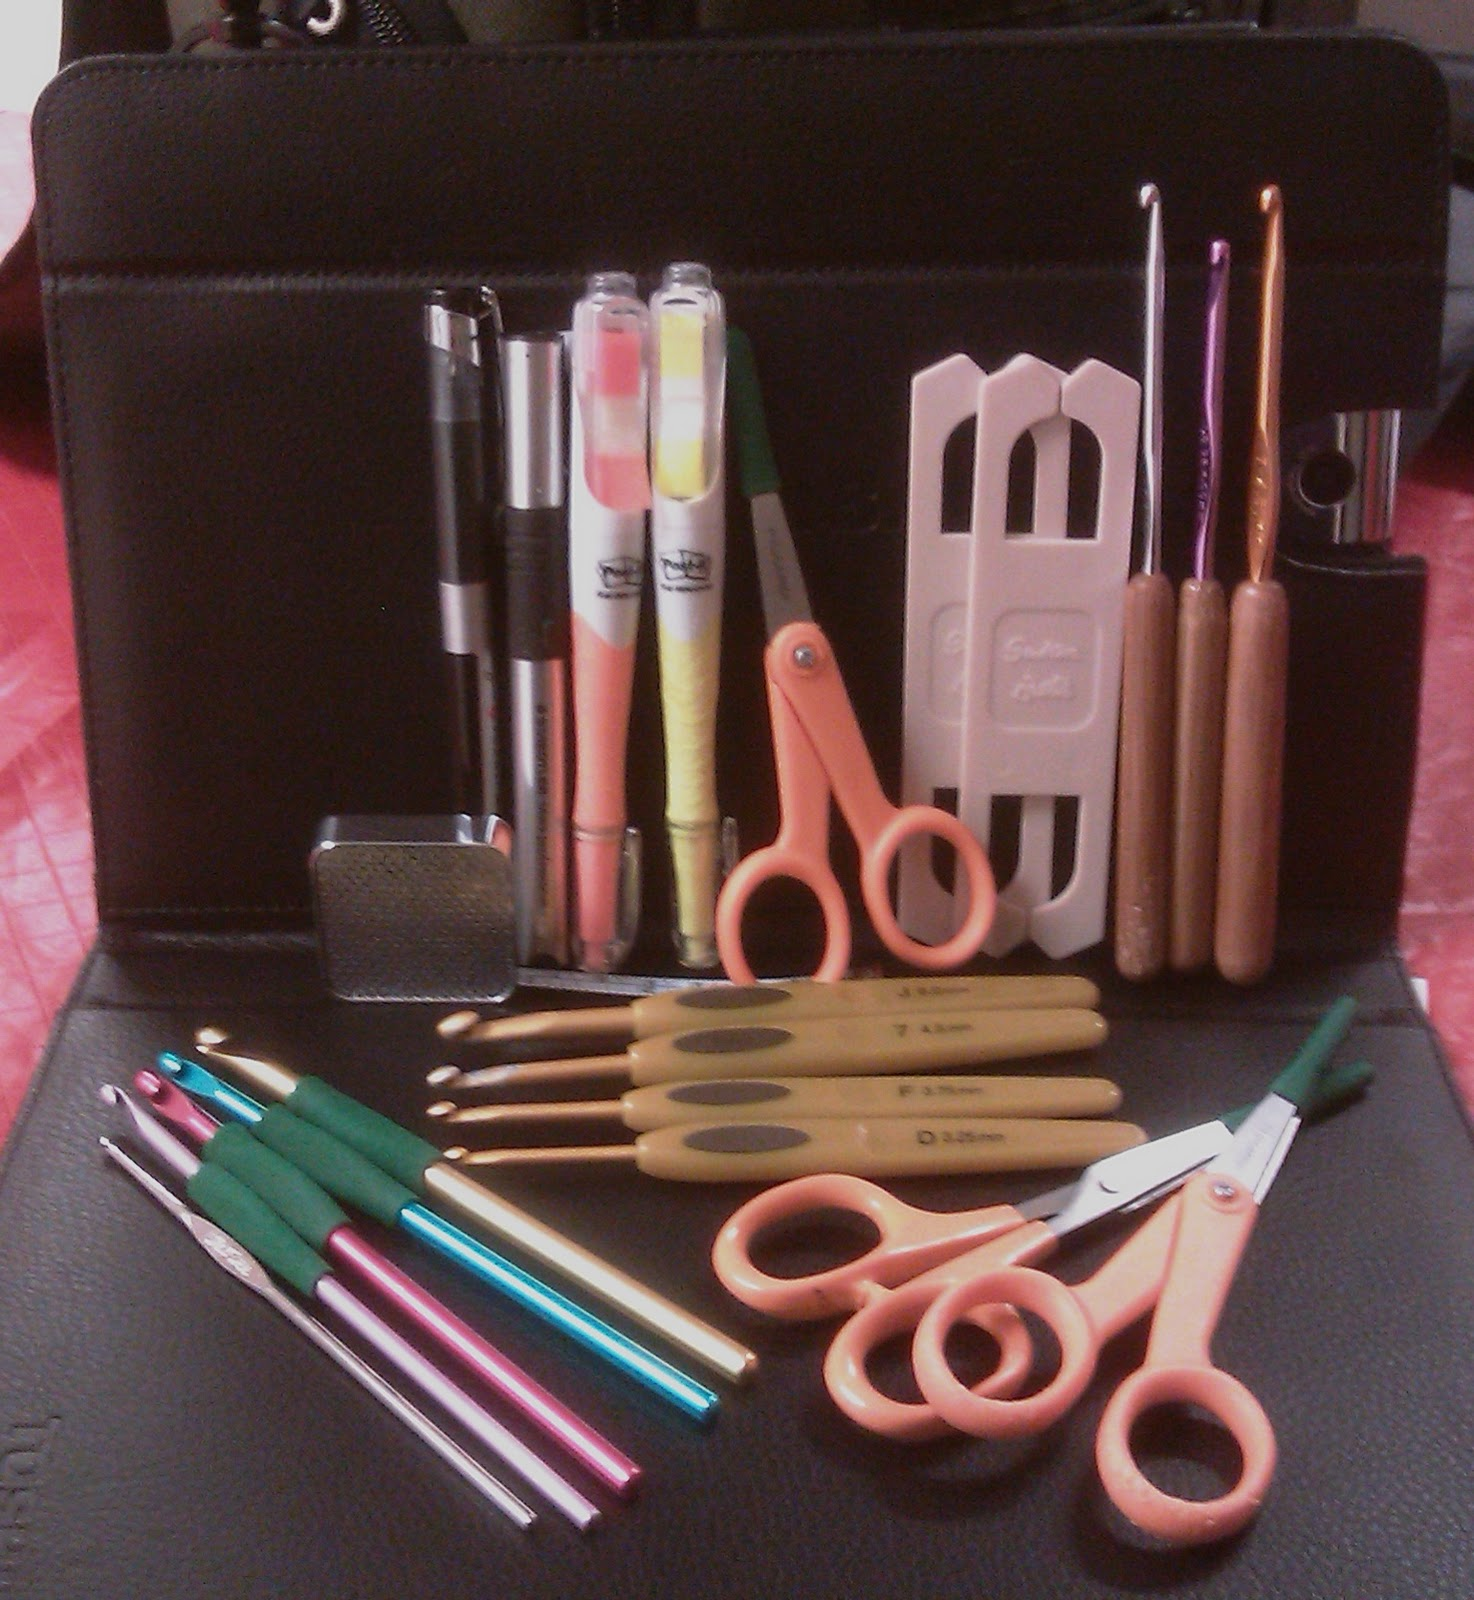 Crocheting Tools : Amigurumi Obsession by Shannon: What is in your crochet tool kit?